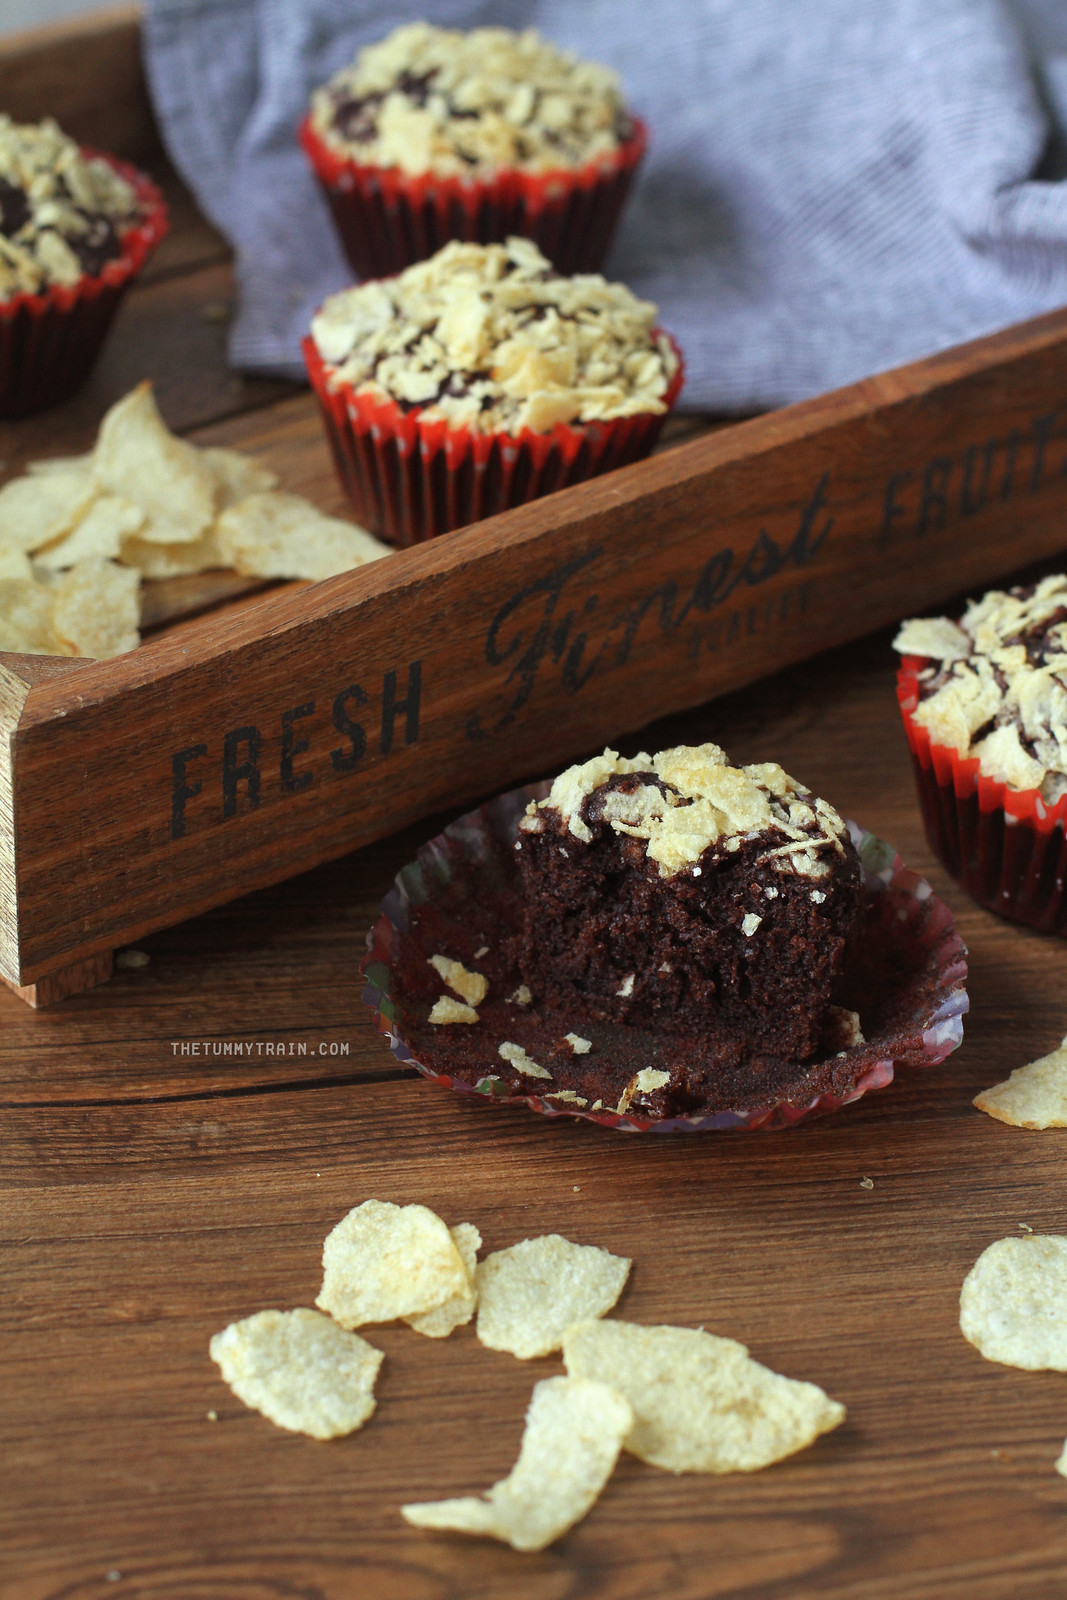 37724778756 7f20fca2c3 h - These Chocolate-Potato Chips Muffins are a unique play on sweet and salty